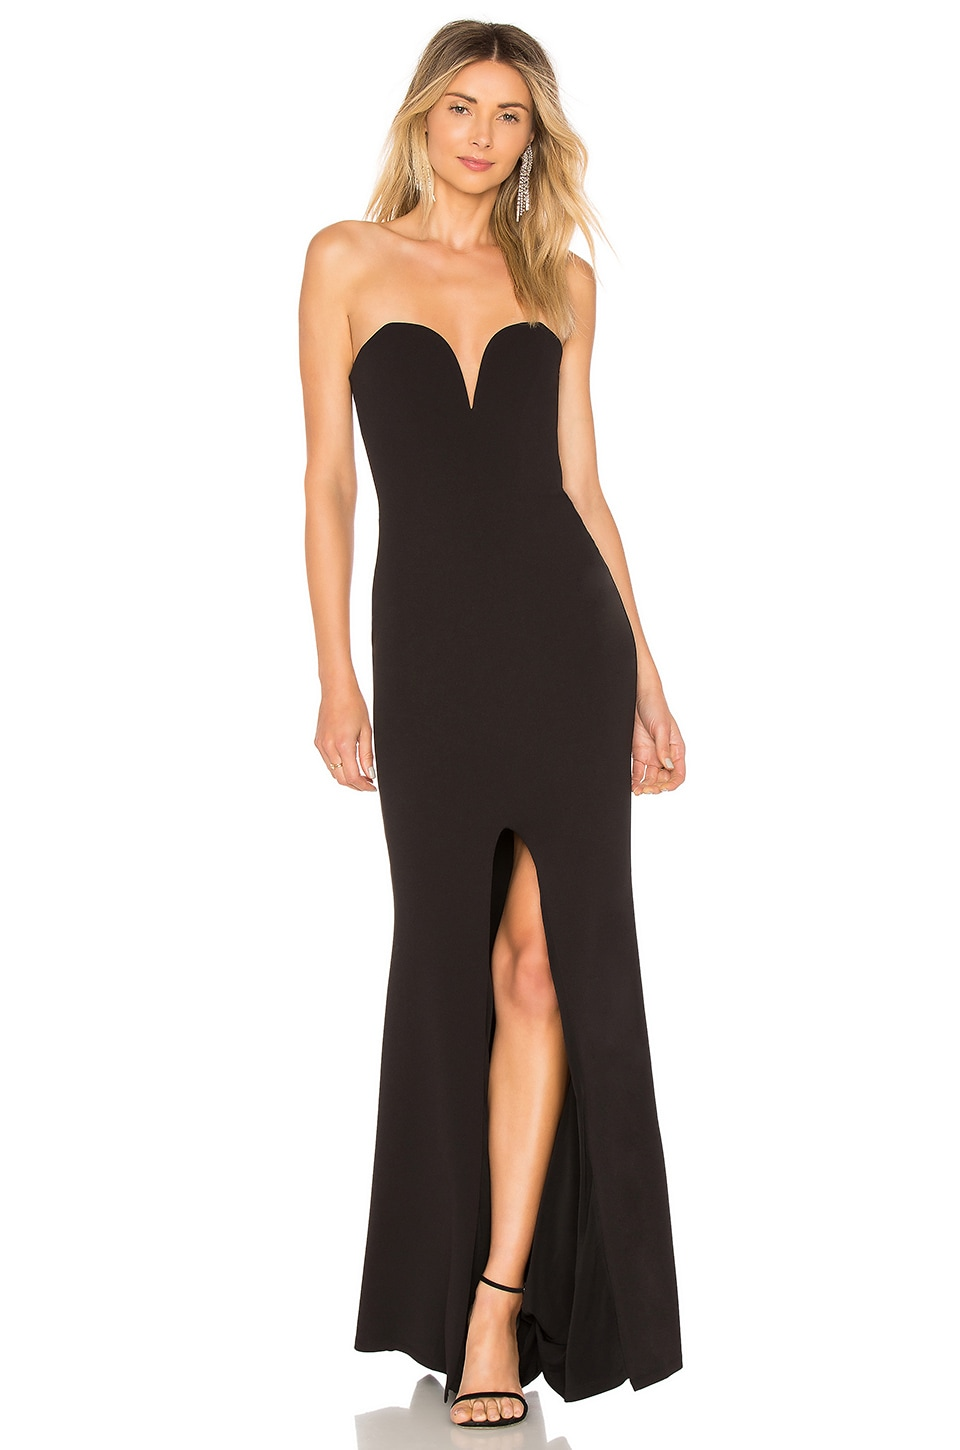 NOOKIE HONEY STRAPLESS GOWN, BLACK | ModeSens